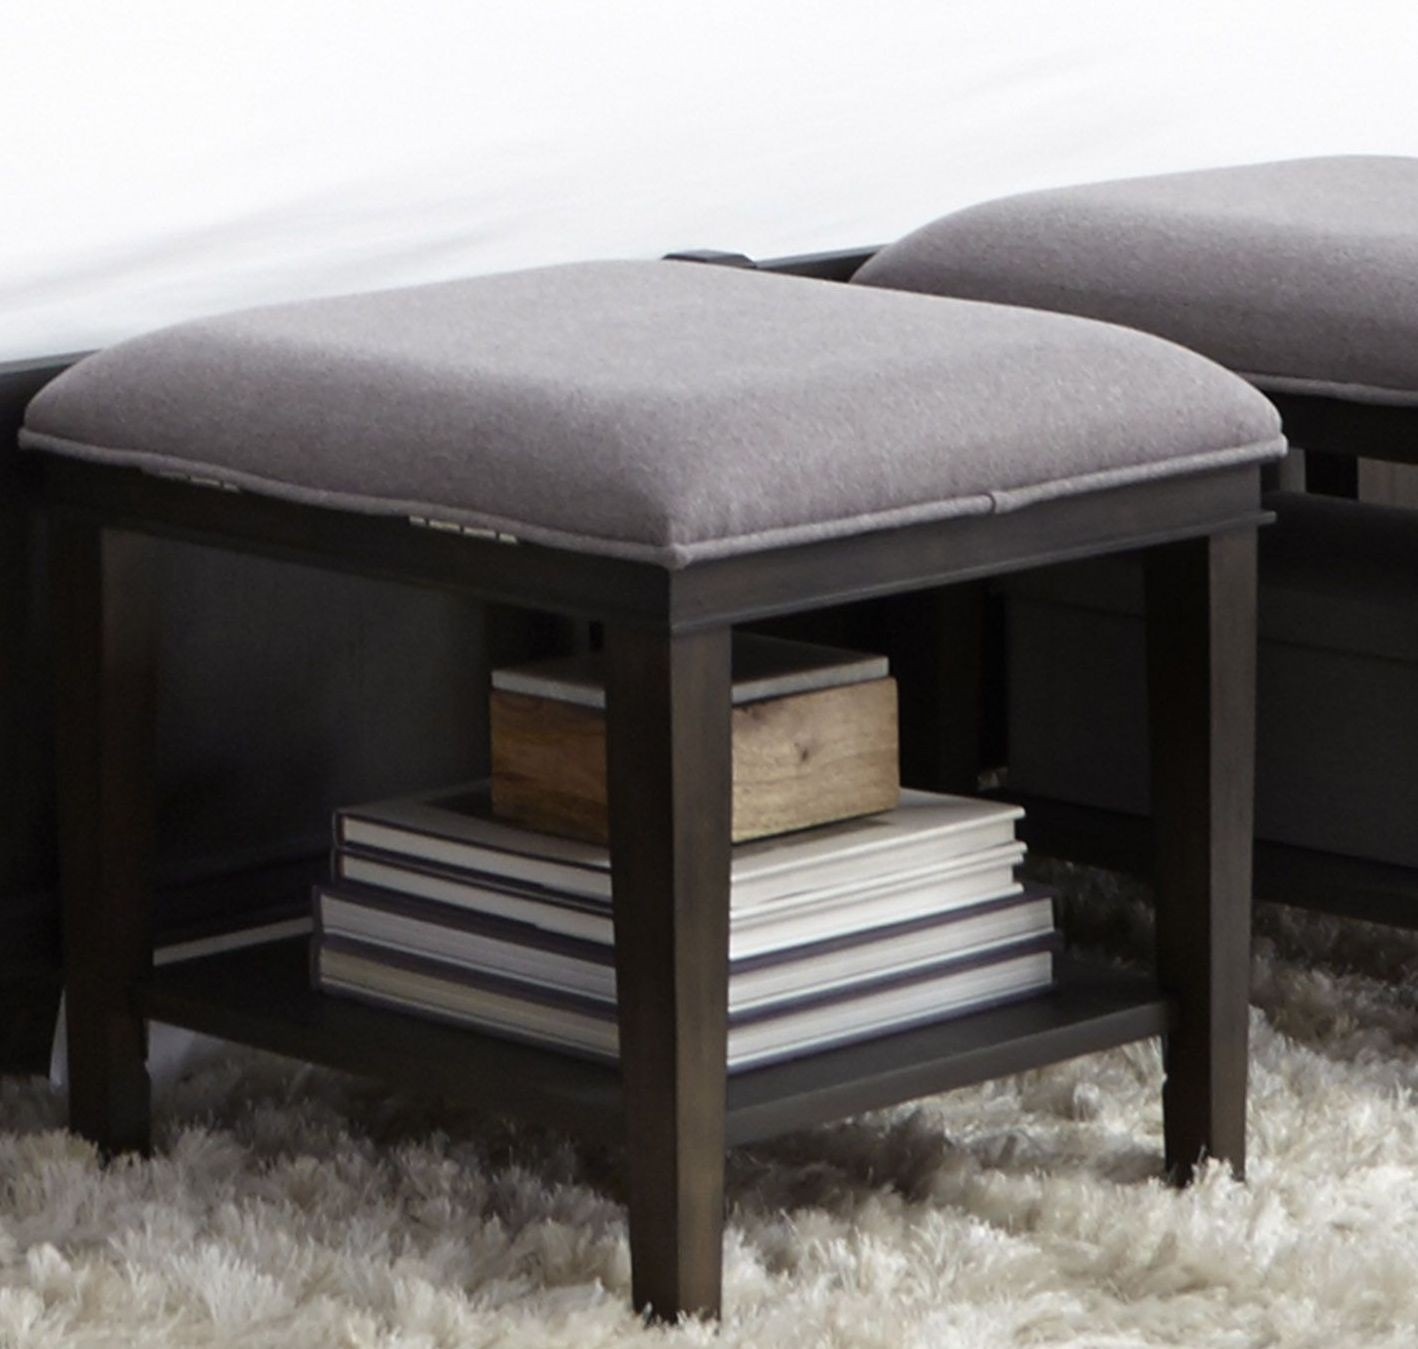 Bench By Bed: Tivoli Brown Bed Bench, 819-BR47, Liberty